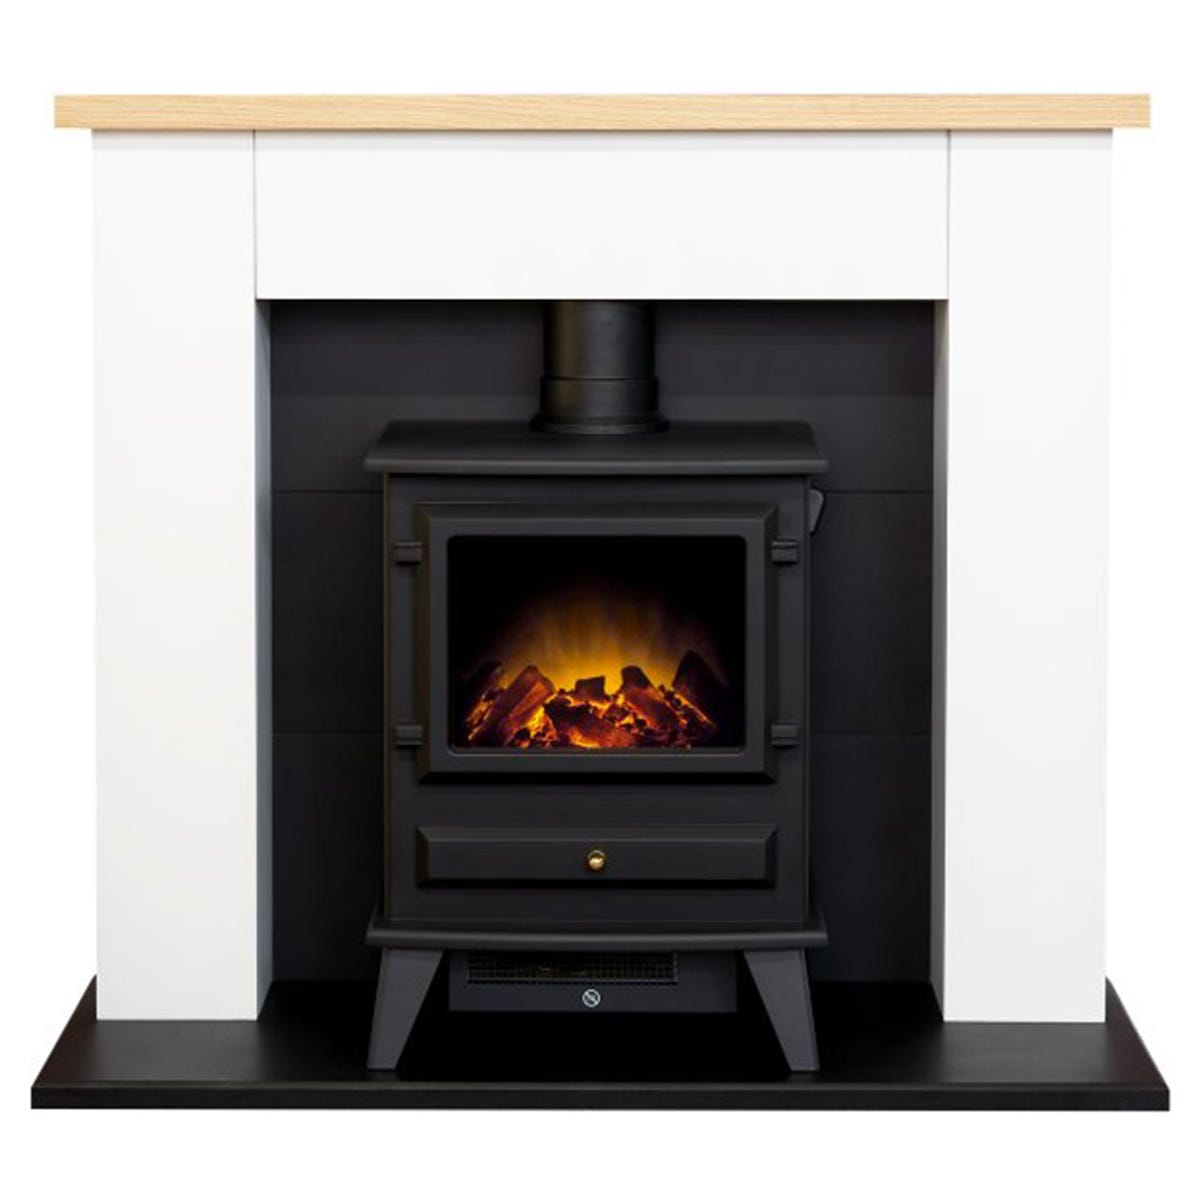 Adam Chester Stove Fireplace in Pure White with Hudson Electric Stove in Black 39 Inch